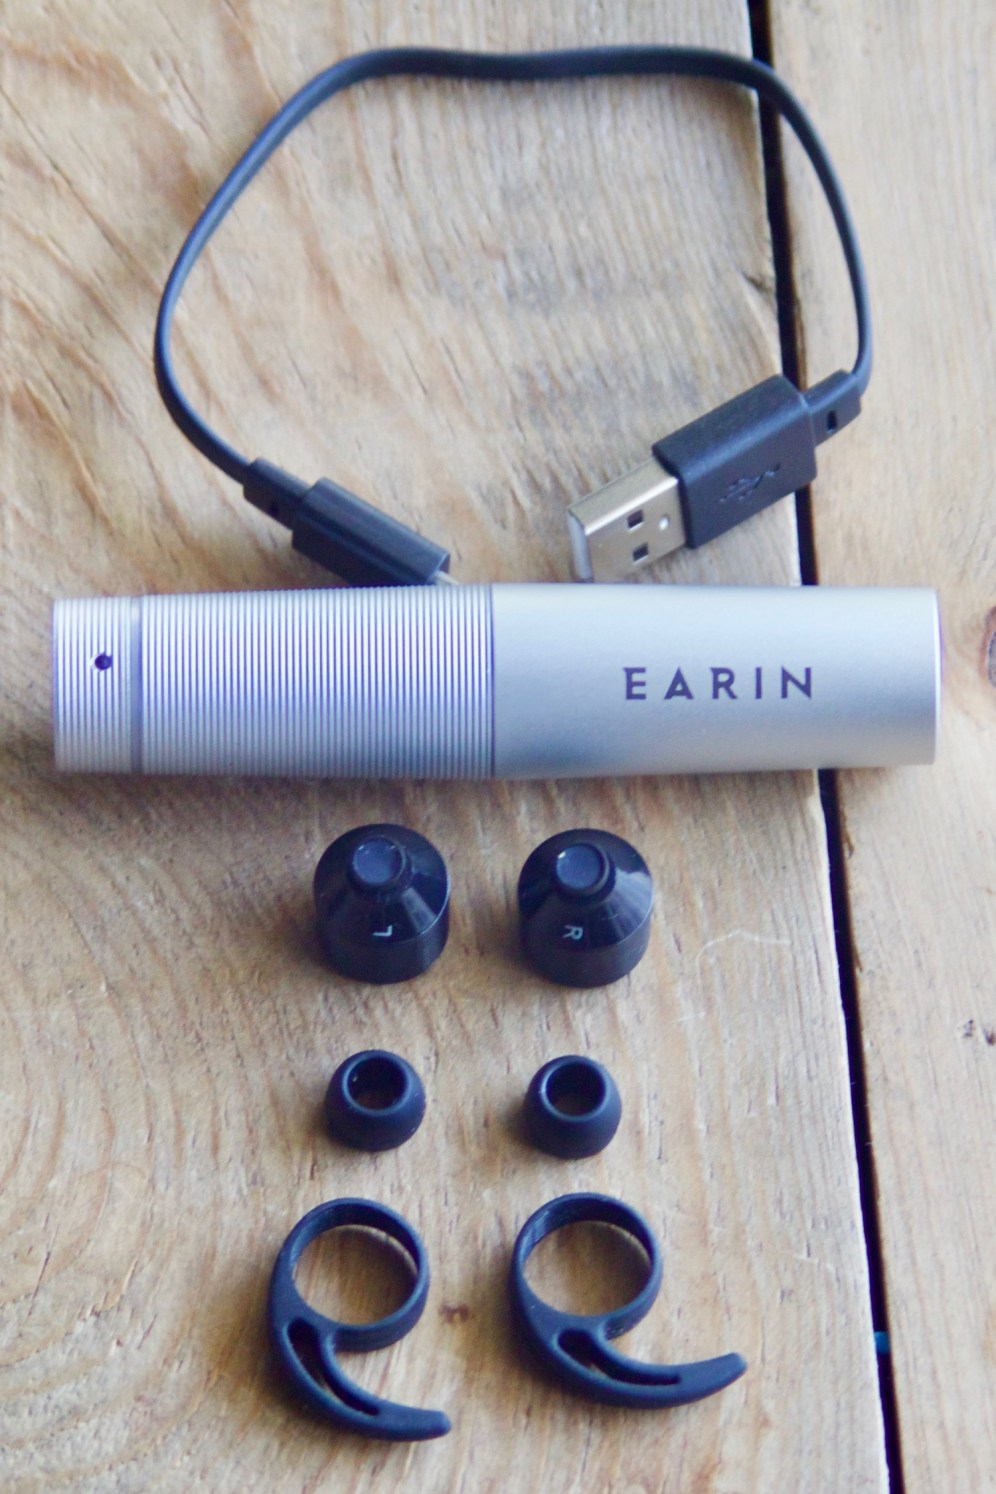 Earin true wireless earbud capsule and accessories